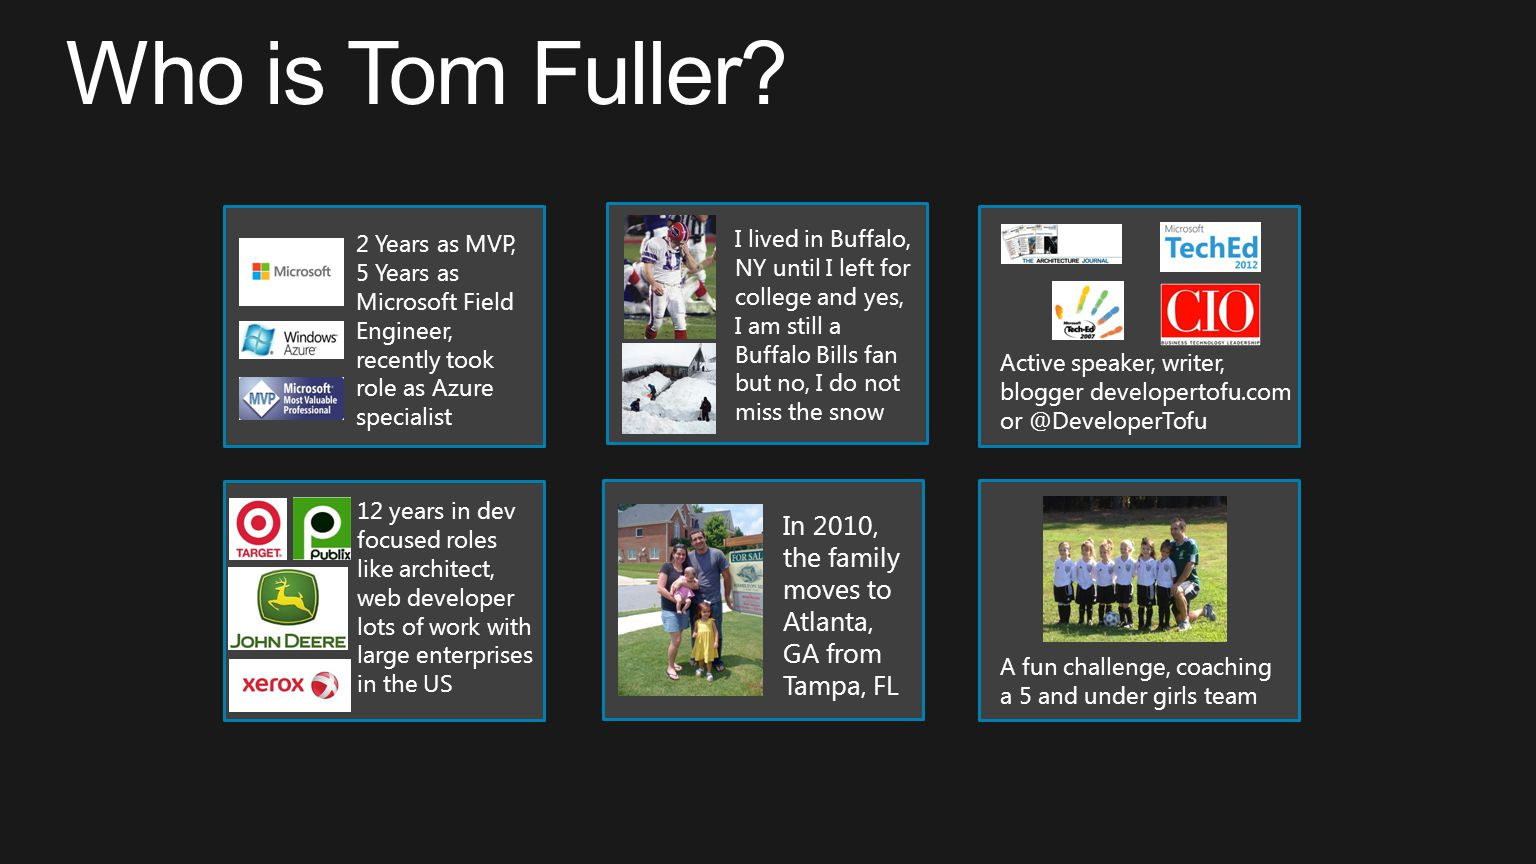 Who is Tom Fuller 2 Years as MVP, 5 Years as Microsoft Field Engineer, recently took role as Azure specialist.